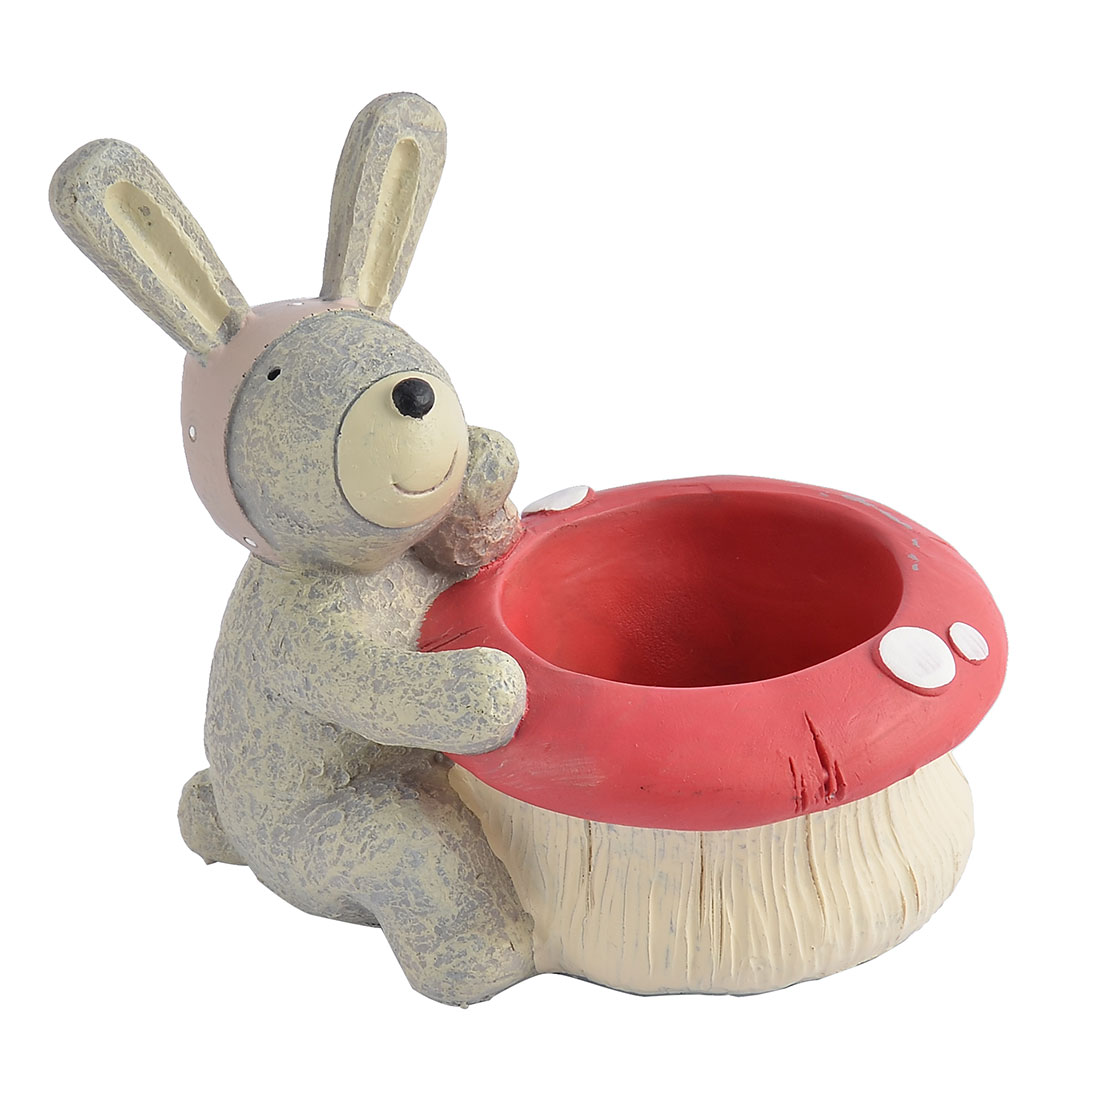 Home Office Dormitory Desk Mini Polyresin Rabbit Shaped Flower Plant Pot